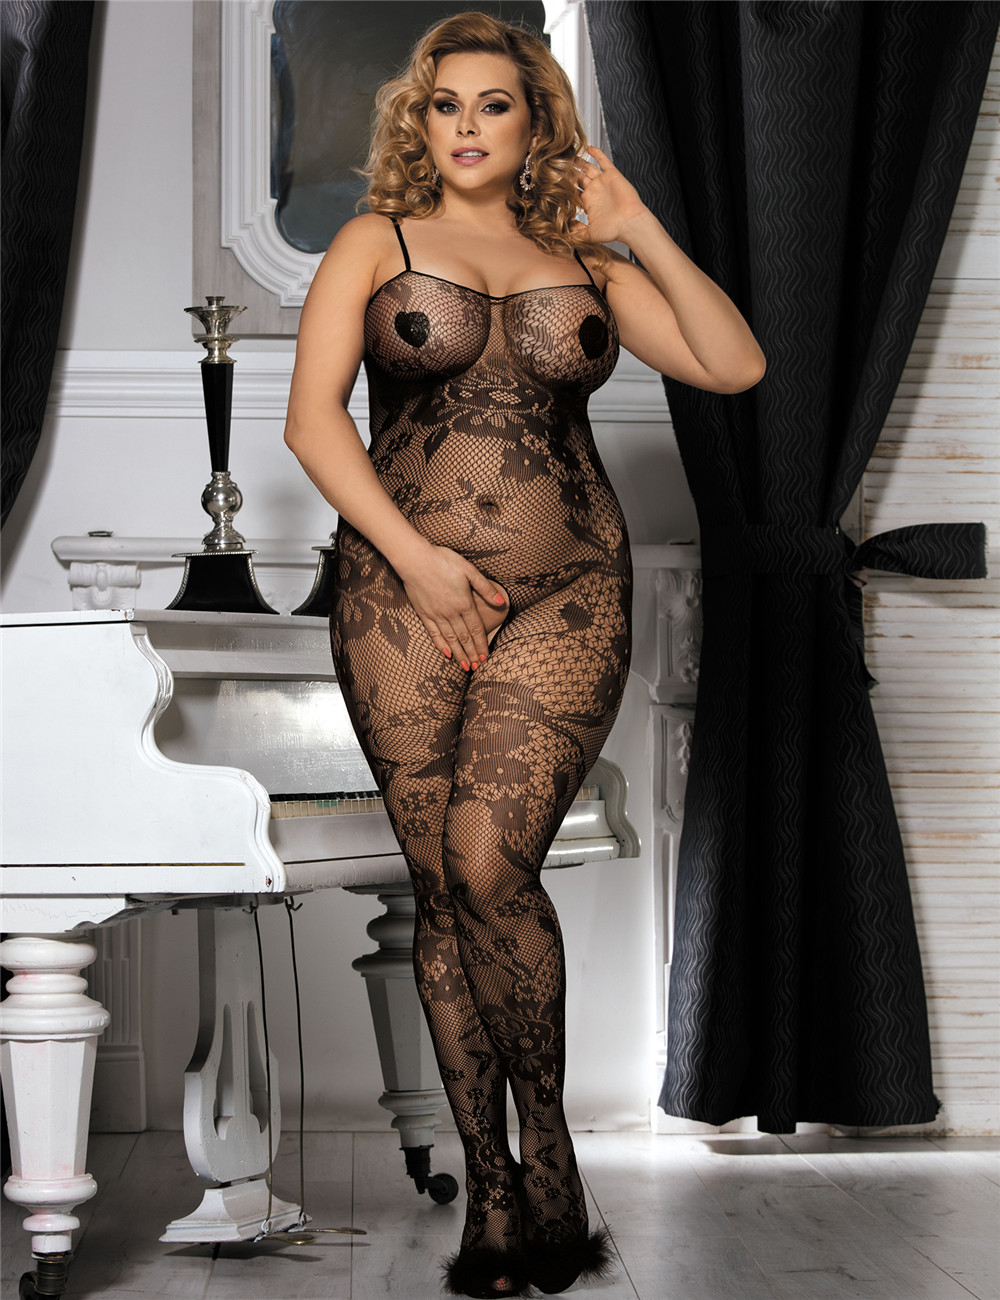 Plus Size Crotchless Floral Fishnet Bodystocking